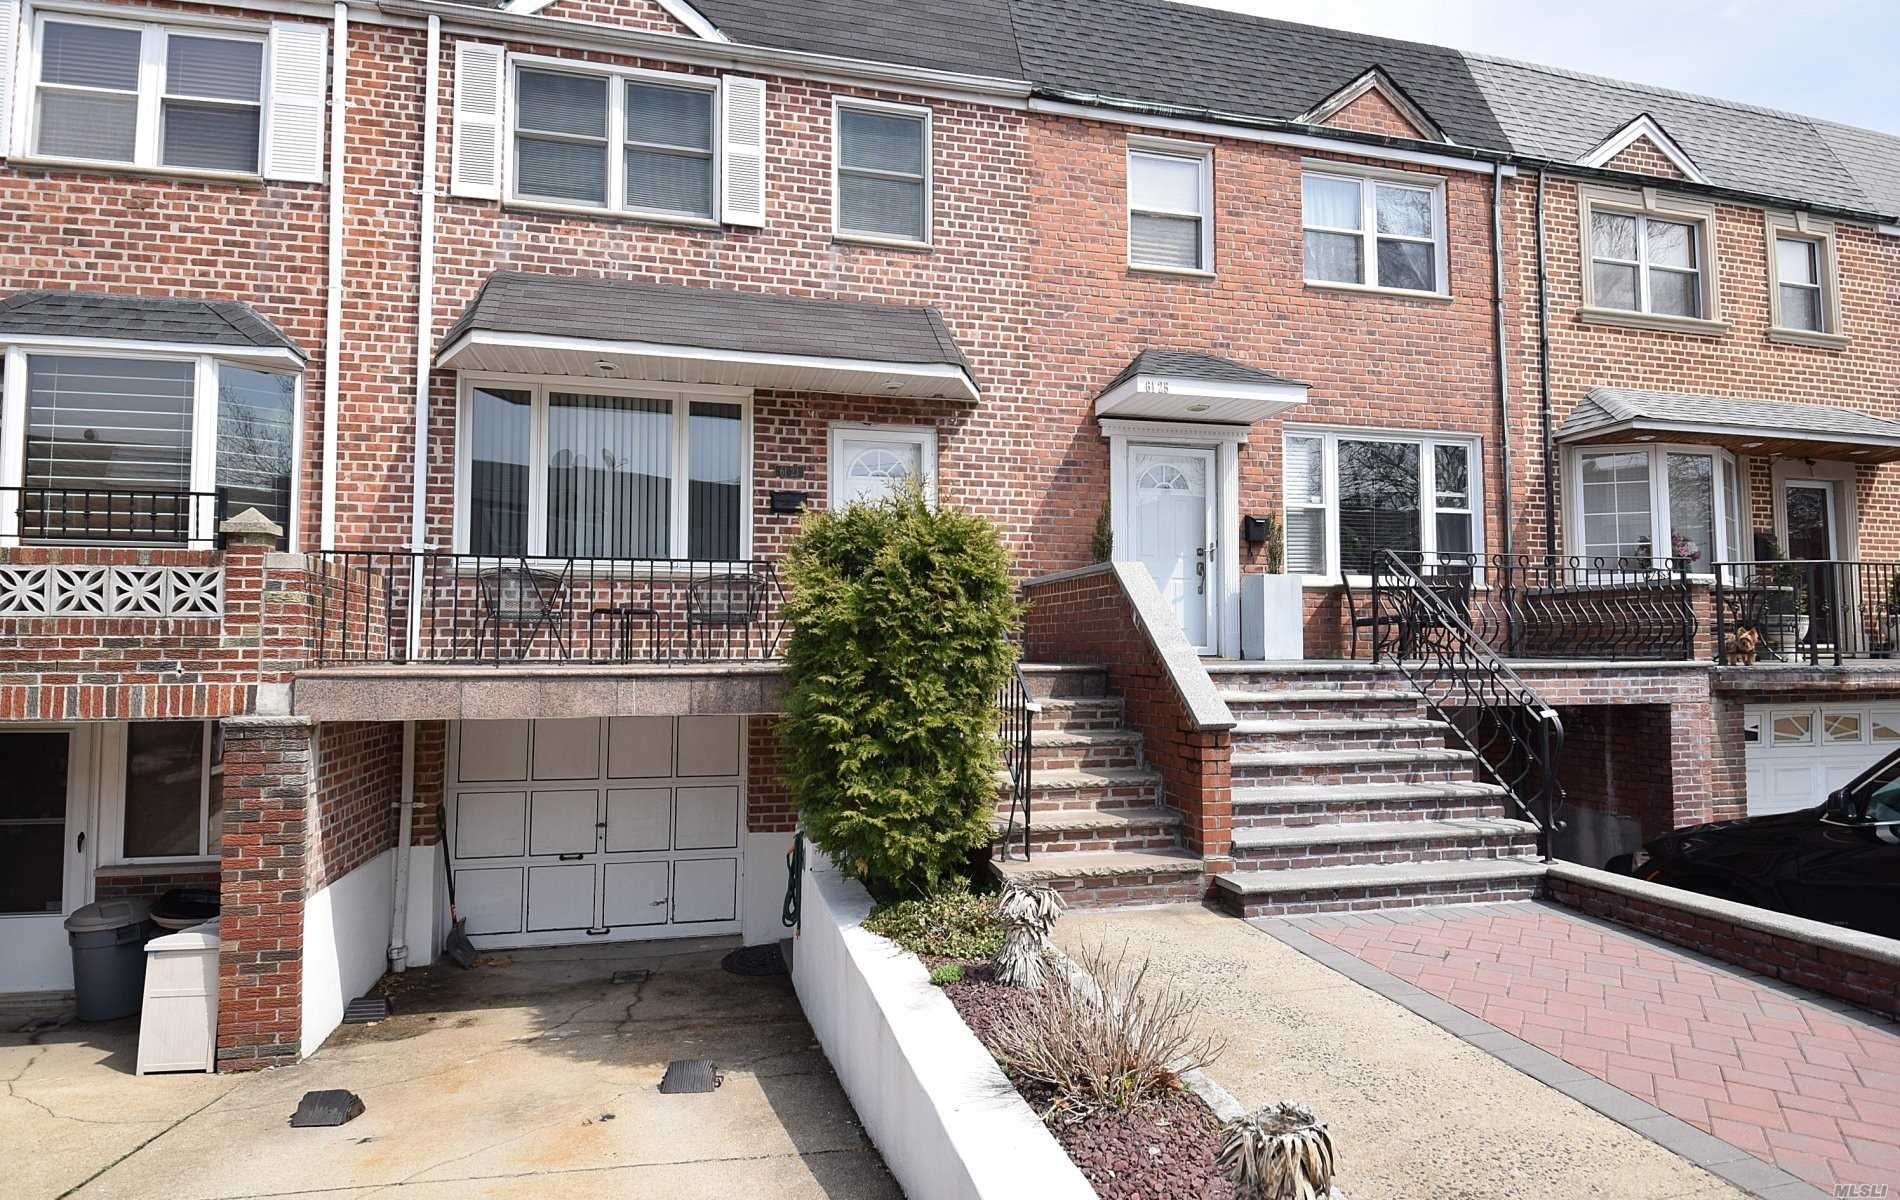 Location, Location, Location!! Beautiful 3 Bedroom With 2.5 Baths, CAC units, Full Finished Basement, Private Backyard, Eat In Kitchen,  Driveway, Garage And Much More!! Near The Highly Desirable Juniper Valley Park. Don't Miss This One!!